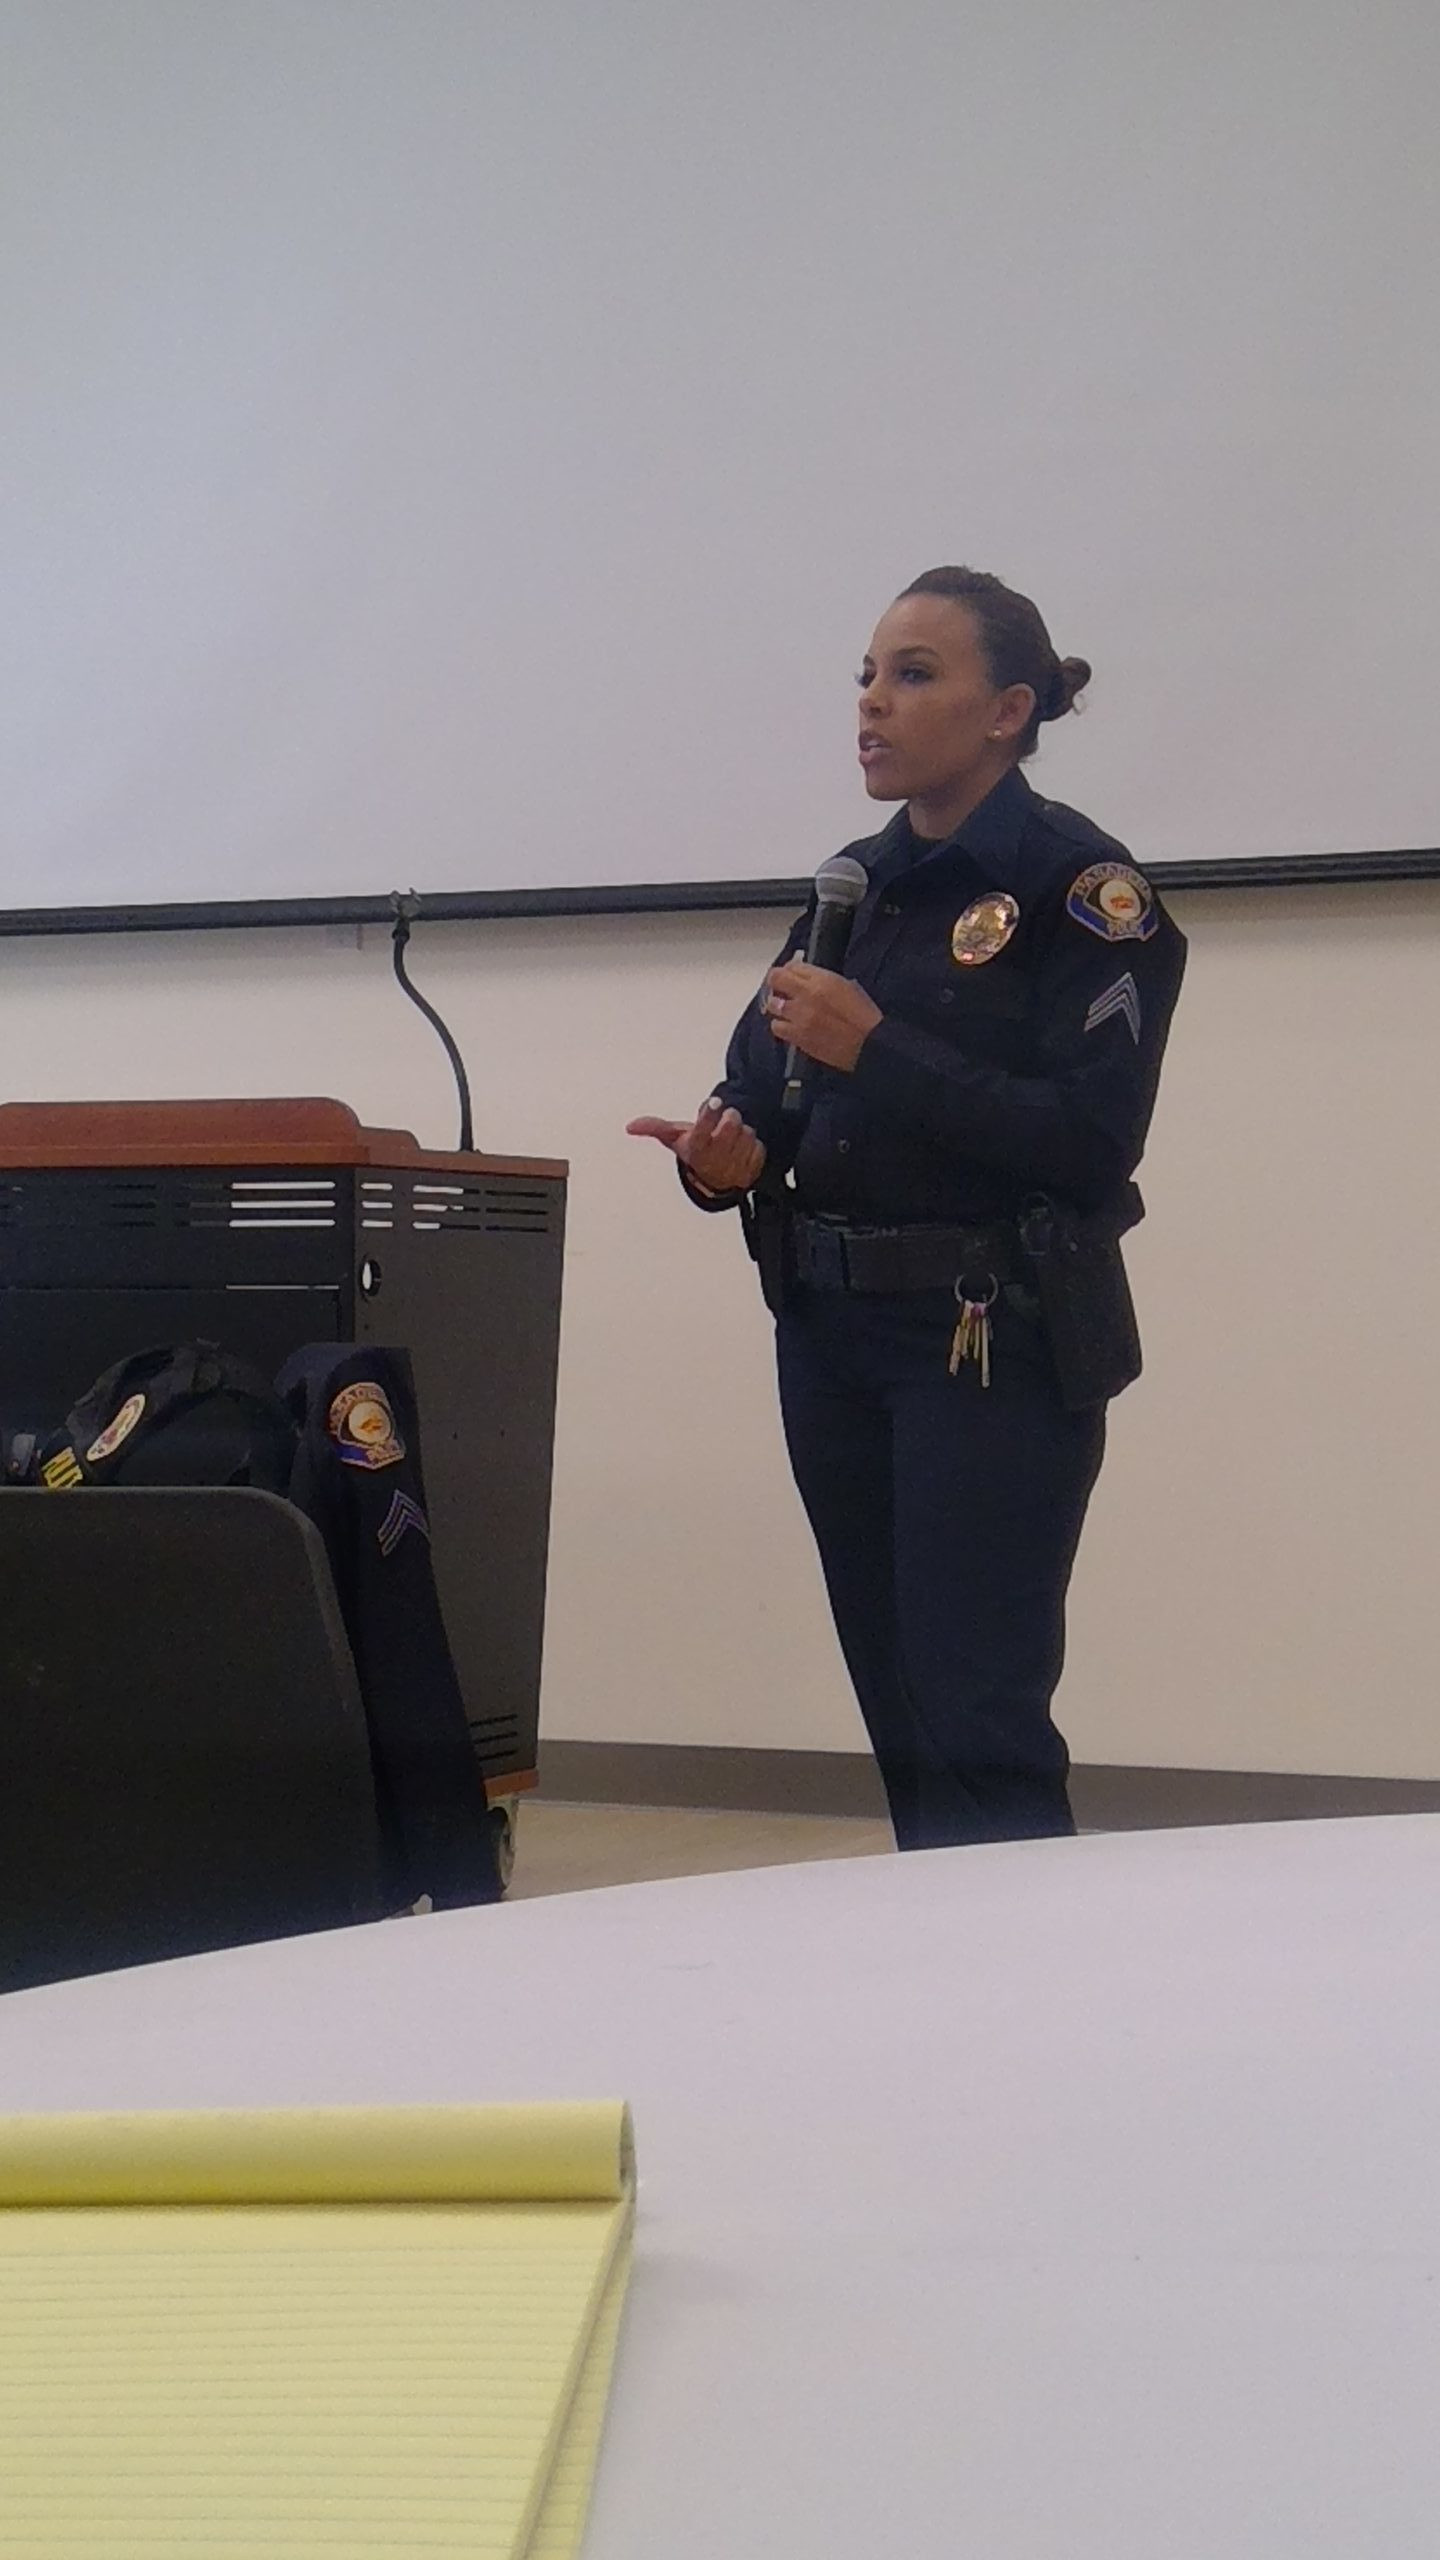 Cpl. Domino Scott-Jackson, Pasadena Police Department, Feb 2020